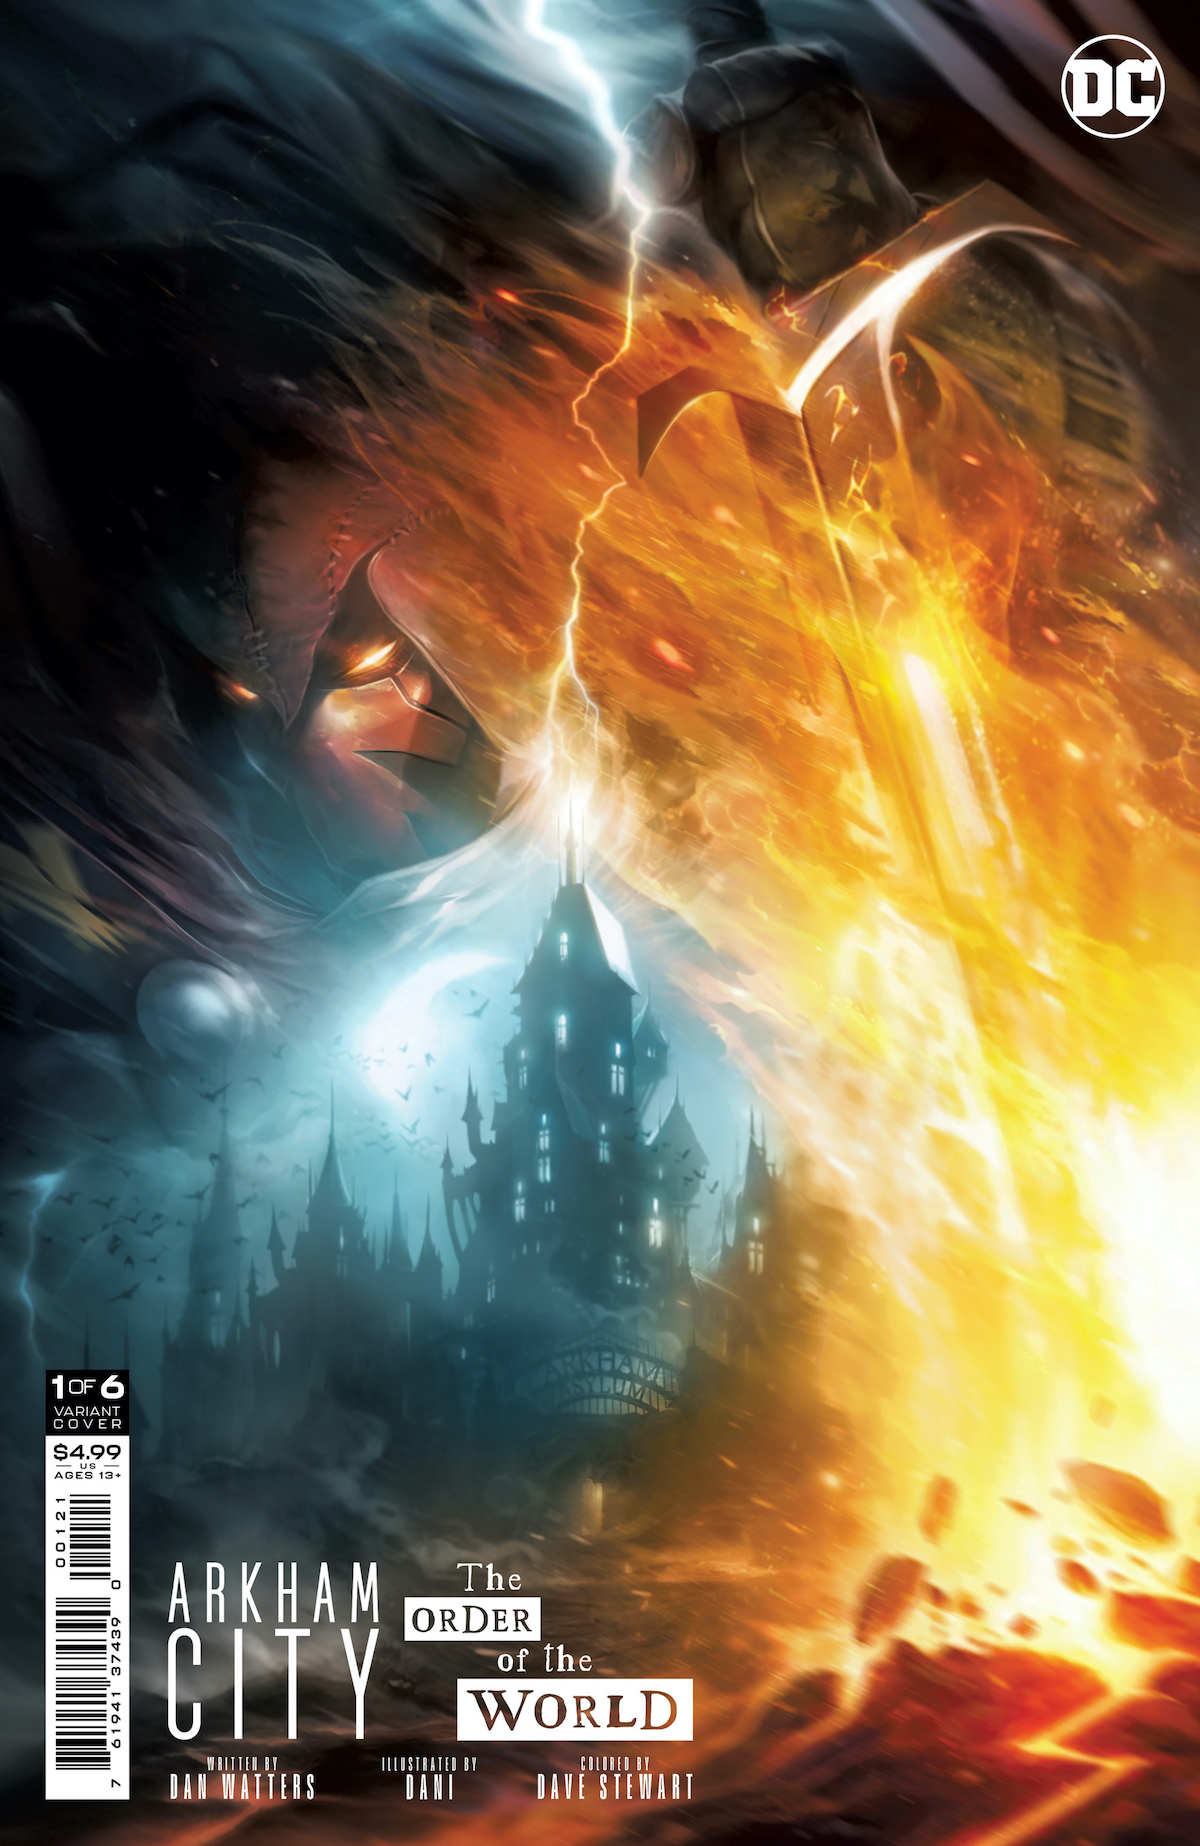 AC TOOTW Cv1 var 00121 Recent Comic Cover Updates For The Week Ending 2021 07 23